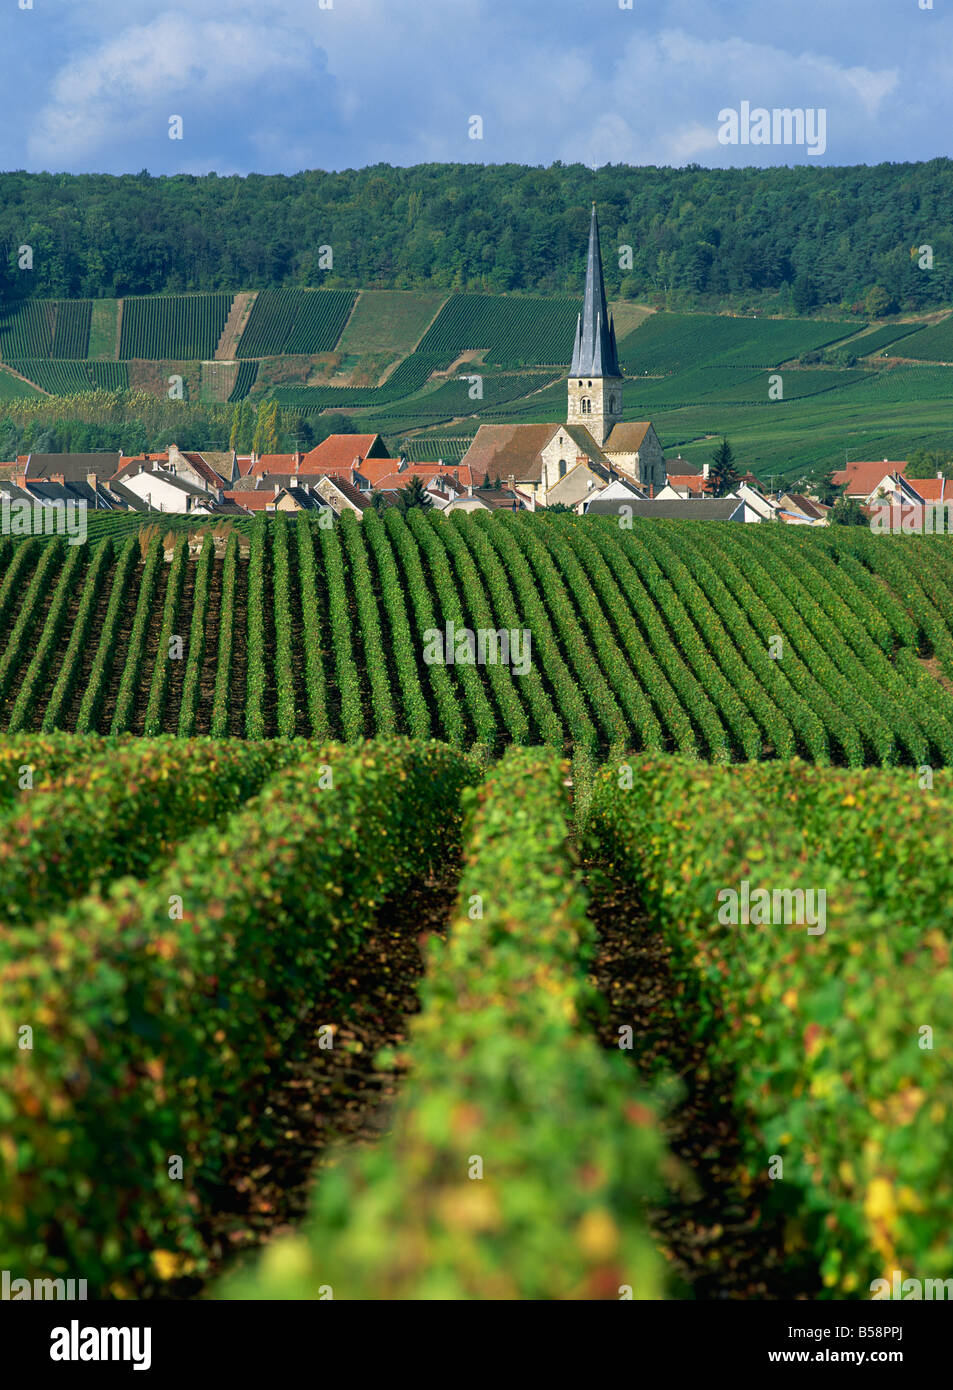 Chamery, Montagne de Reims, Champagne, France, Europe - Stock Image